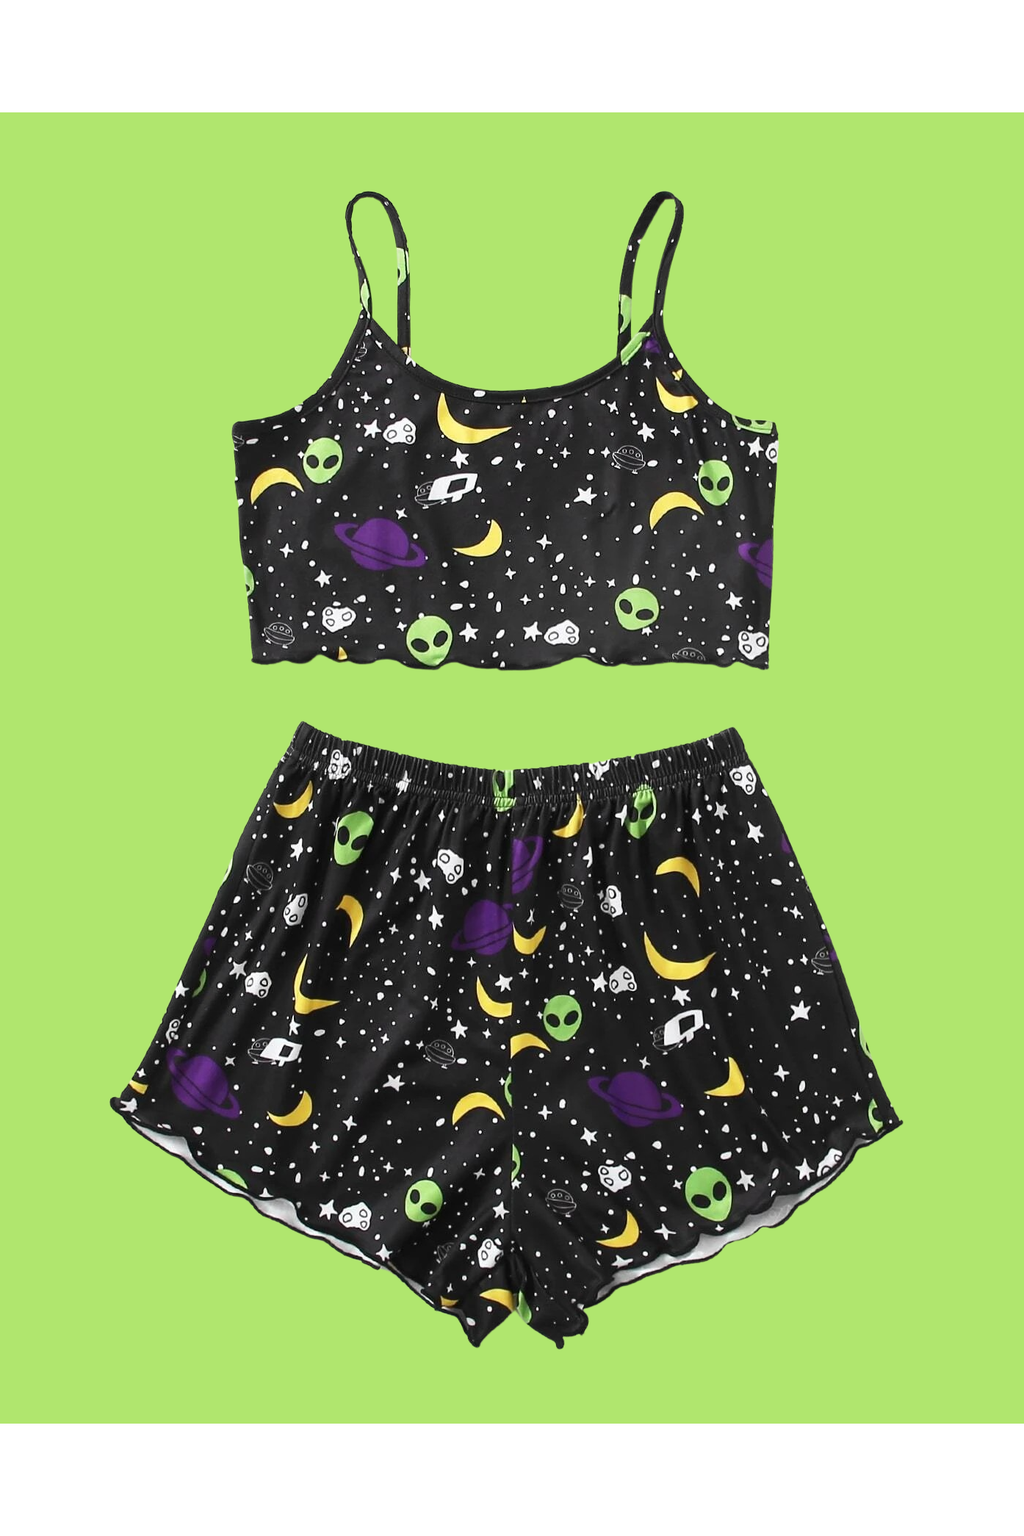 Out Of This World PJ's